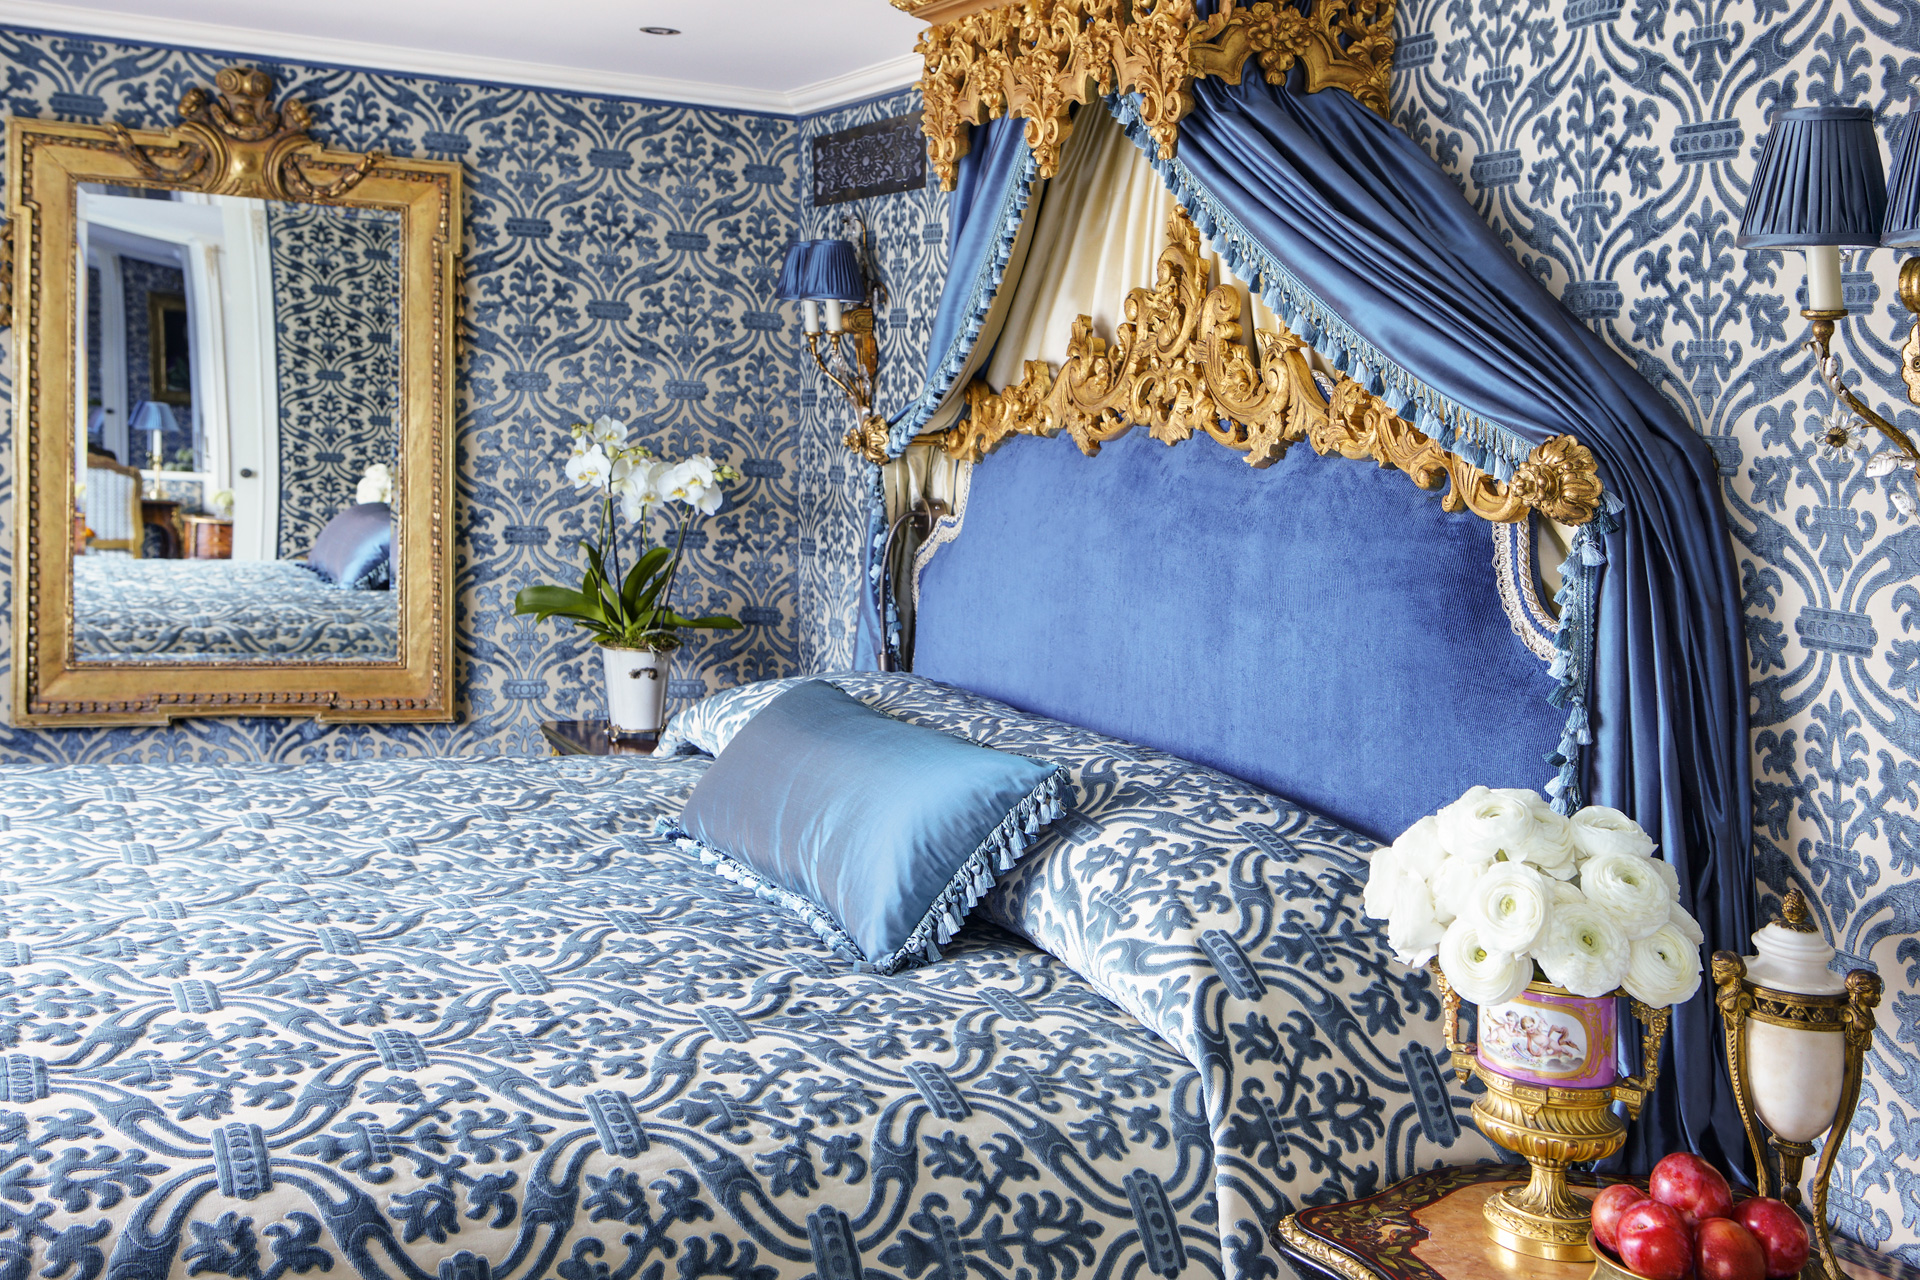 UNIWORLD Boutique River Cruises SS Maria Theresa Accommodation Royal Suite 3.jpg